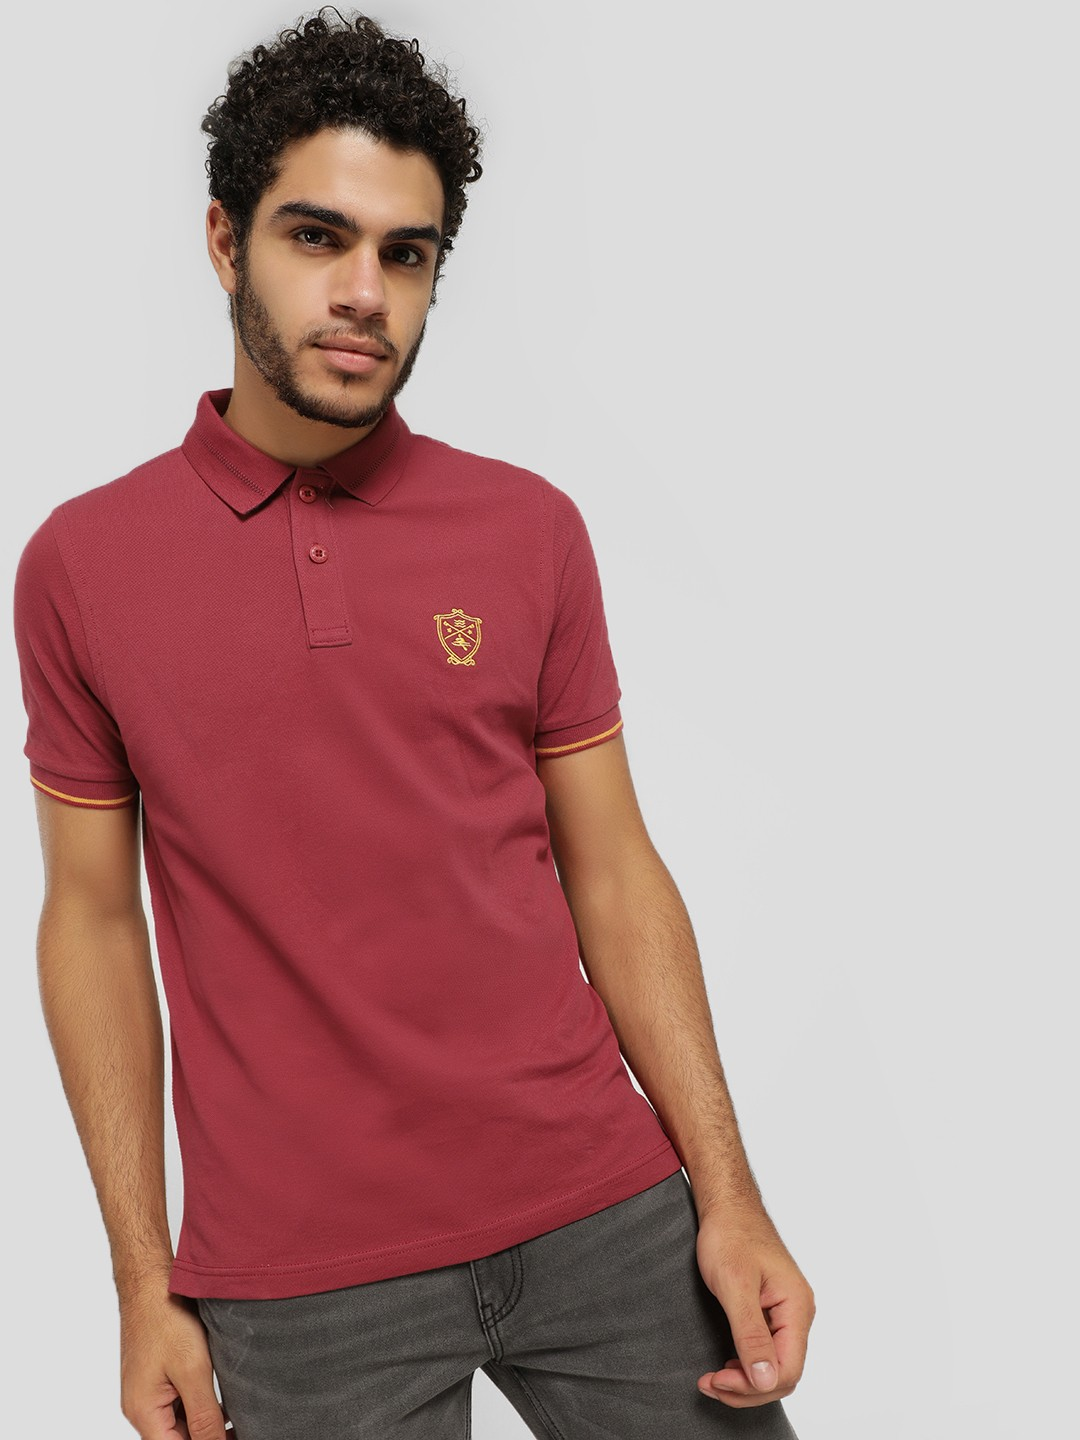 SCULLERS Maroon Woven Collar Polo Shirt 1